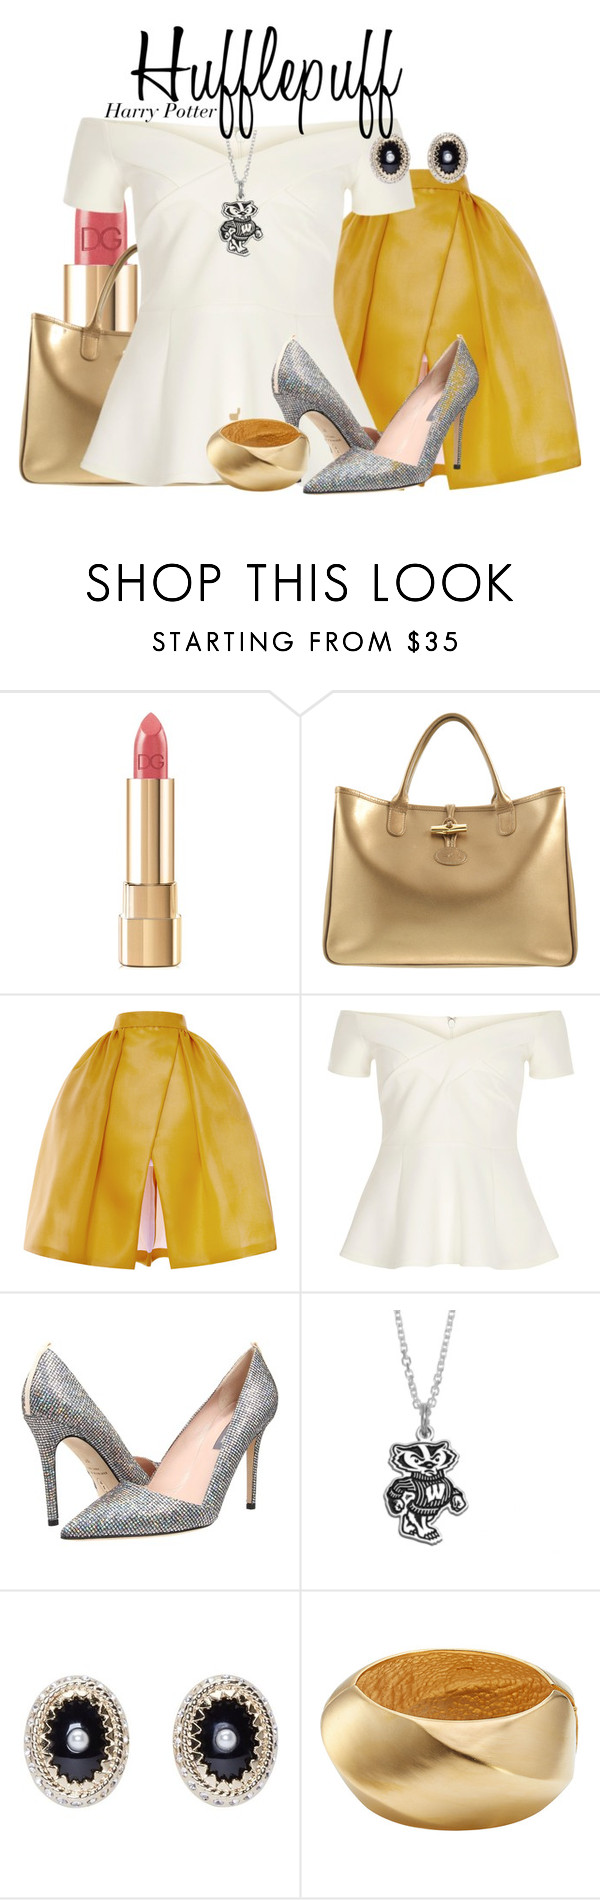 """""""Hufflepuff - Harry Potter"""" by nerd-ville ❤ liked on Polyvore featuring Dolce&Gabbana, Longchamp, Delpozo, River Island, SJP, Fiora, Givenchy, Kenneth Jay Lane and harrypotter"""